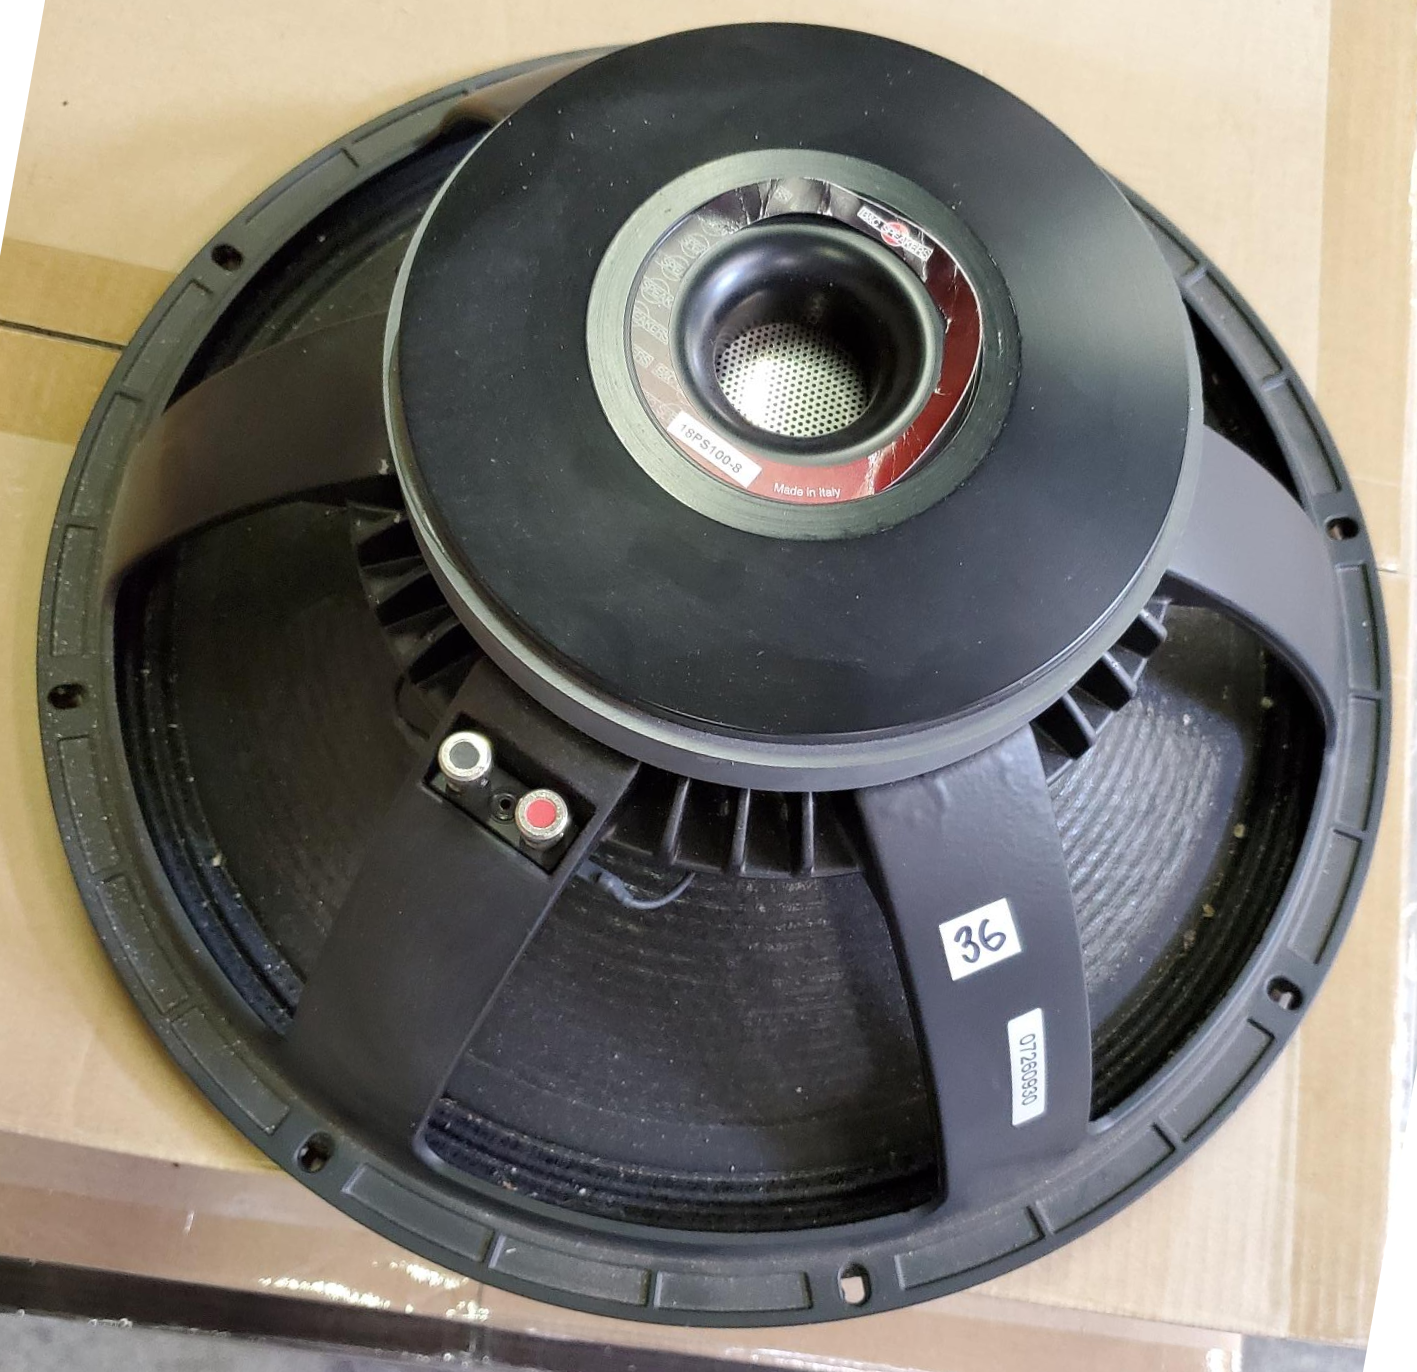 "The most powerful 18"" in the B&C ceramic product range with its 700 watts RMS power handling, the 18PS100-8 defines the low frequency reproduction ""state of the art""."